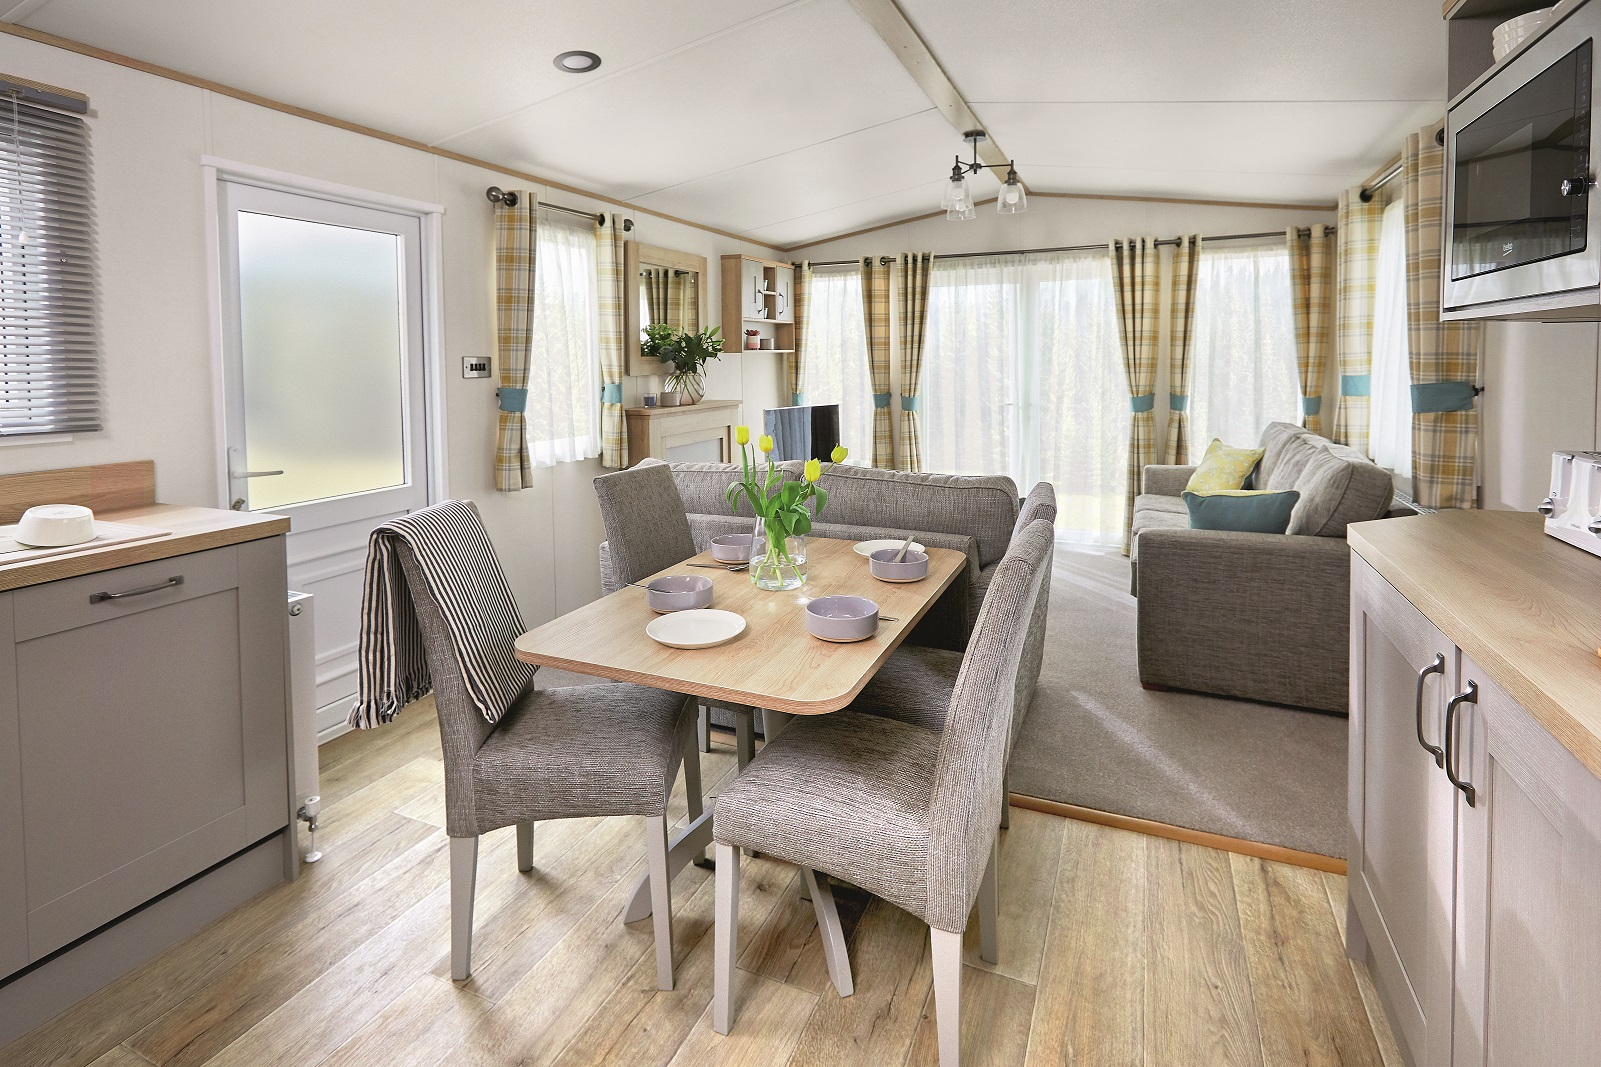 ABI Windermere: New Static Caravans and Holiday Homes for Sale, Available to Order Large Image 1